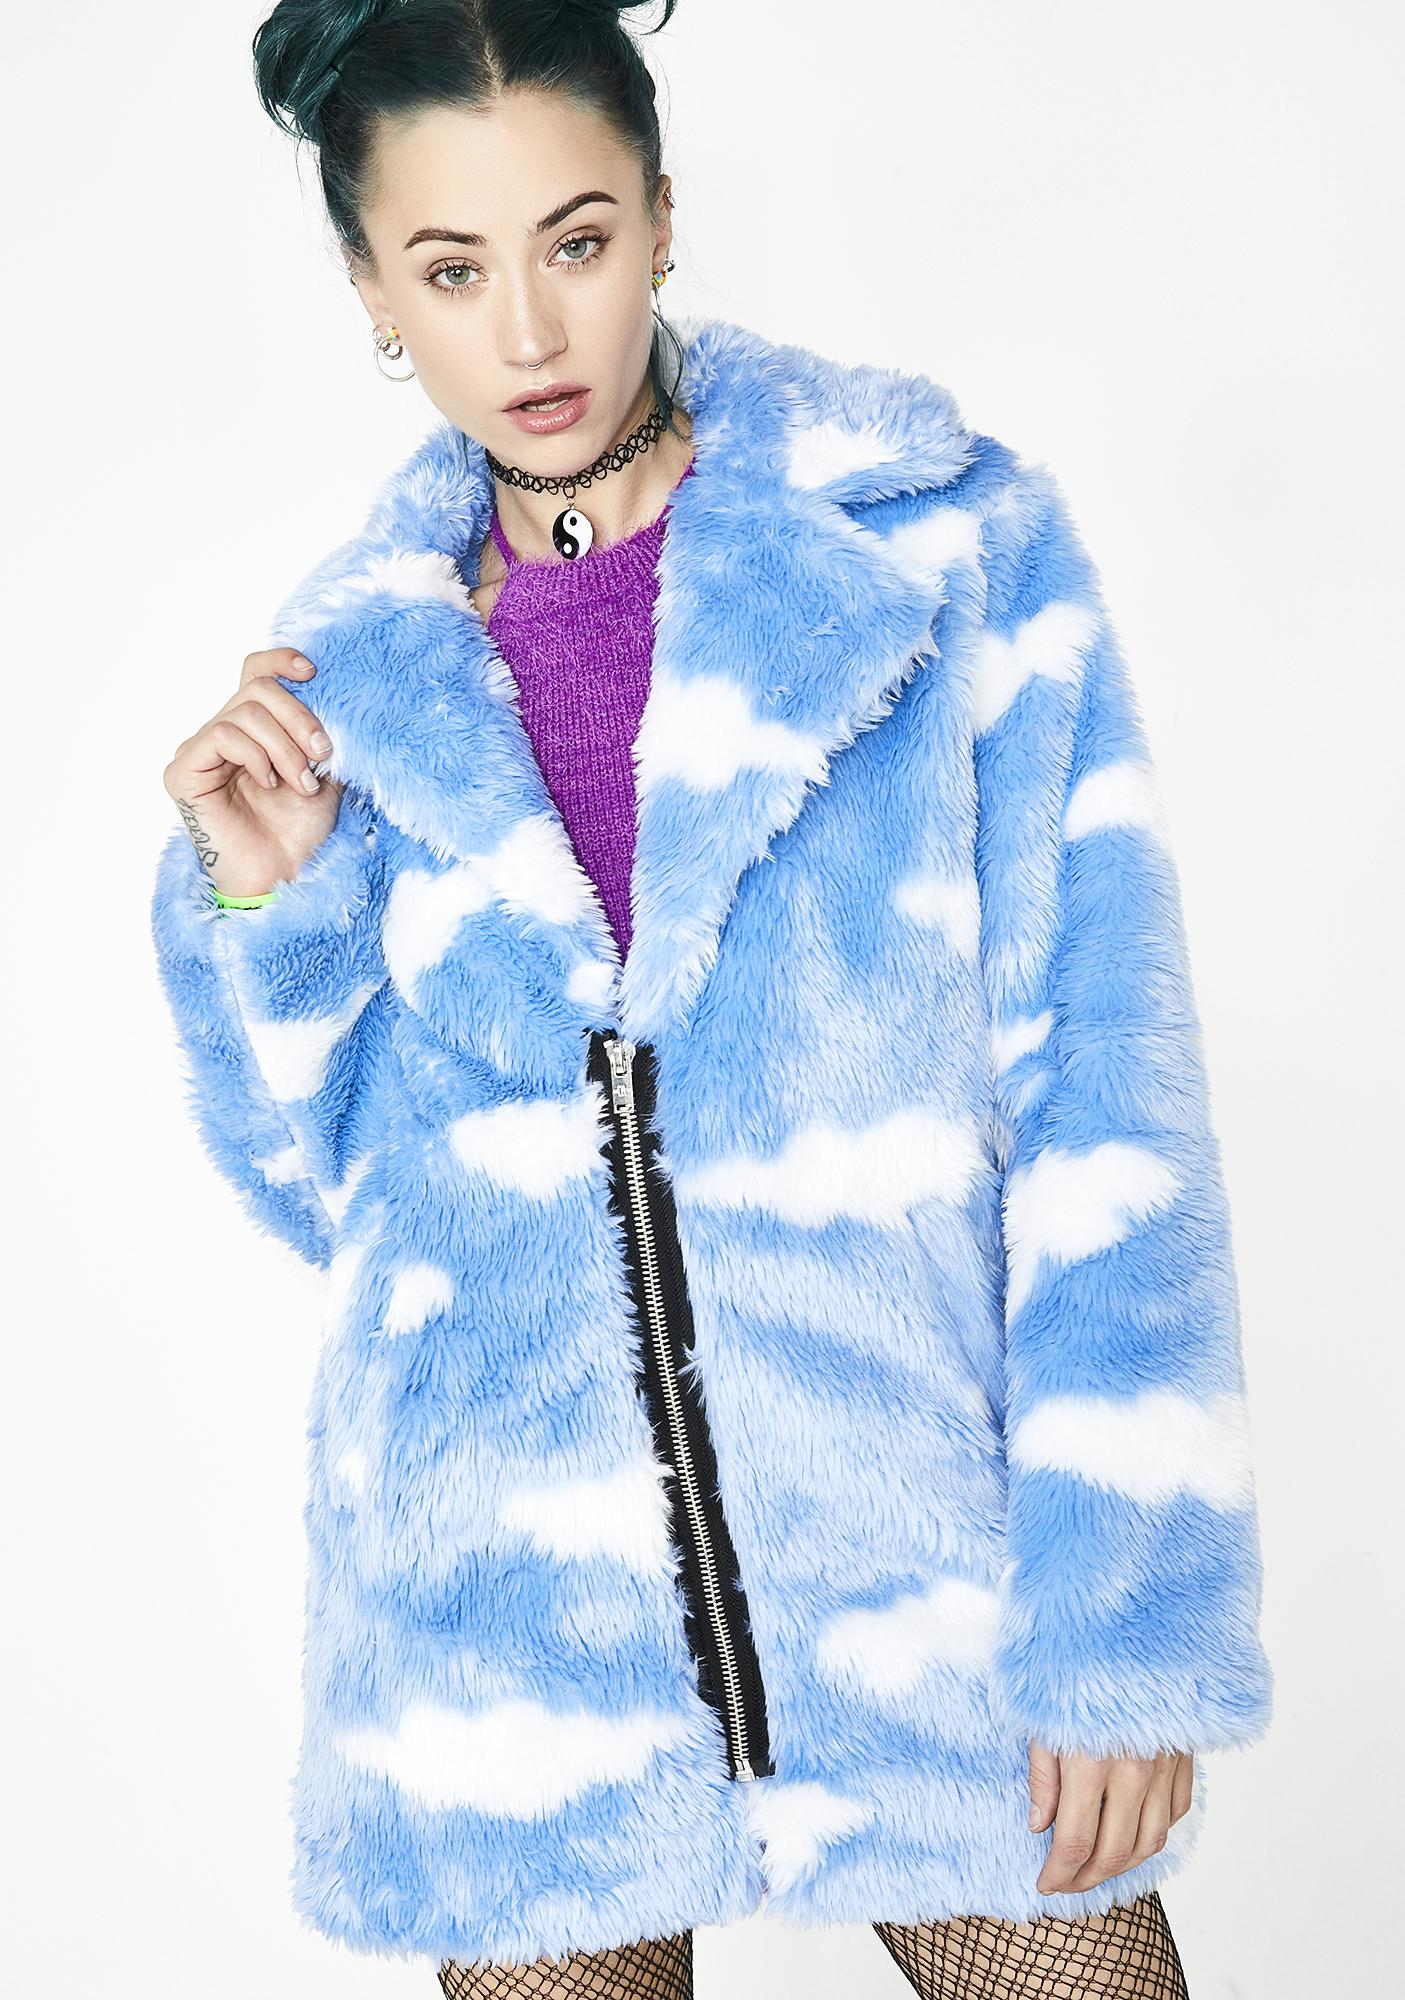 665cfa6a6e Current Mood Daydream Delirium Faux Fur Jacket